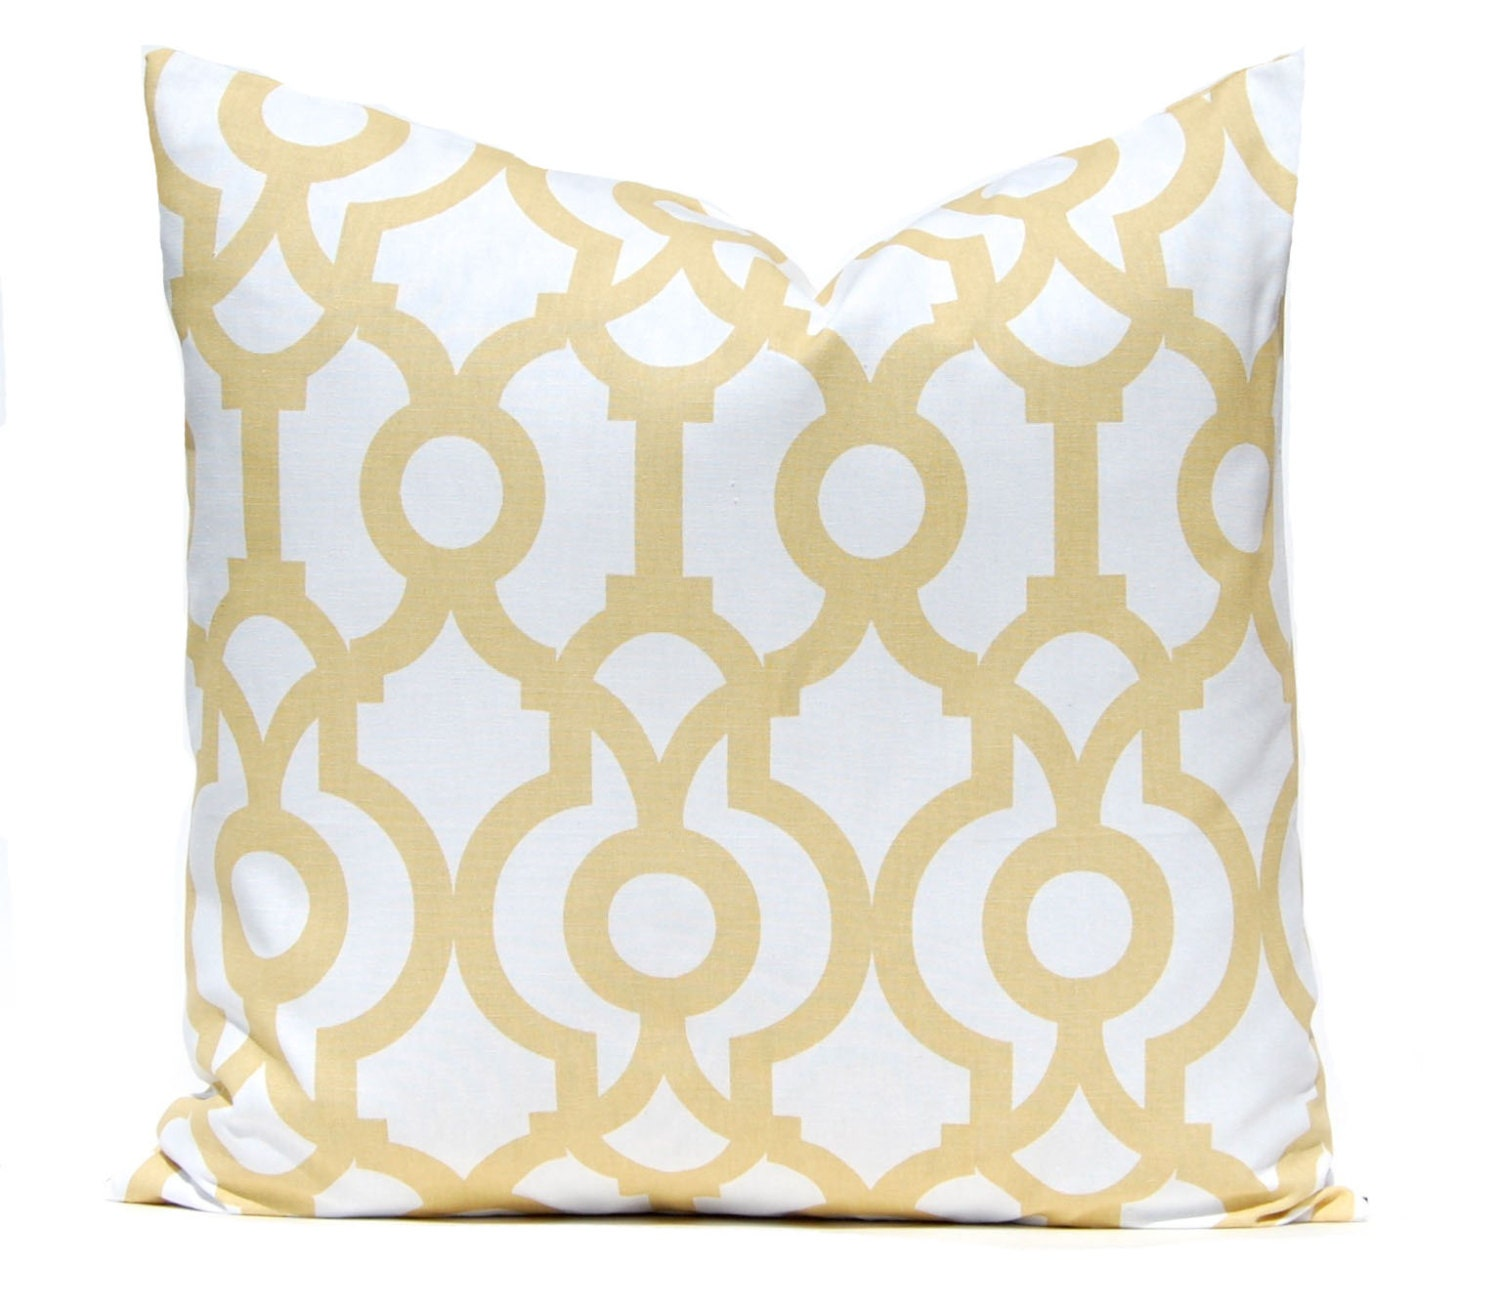 Decorative Pillows White And Gold : Pillows Yellow Pillow Gold Pillow Decorative Throw Pillow